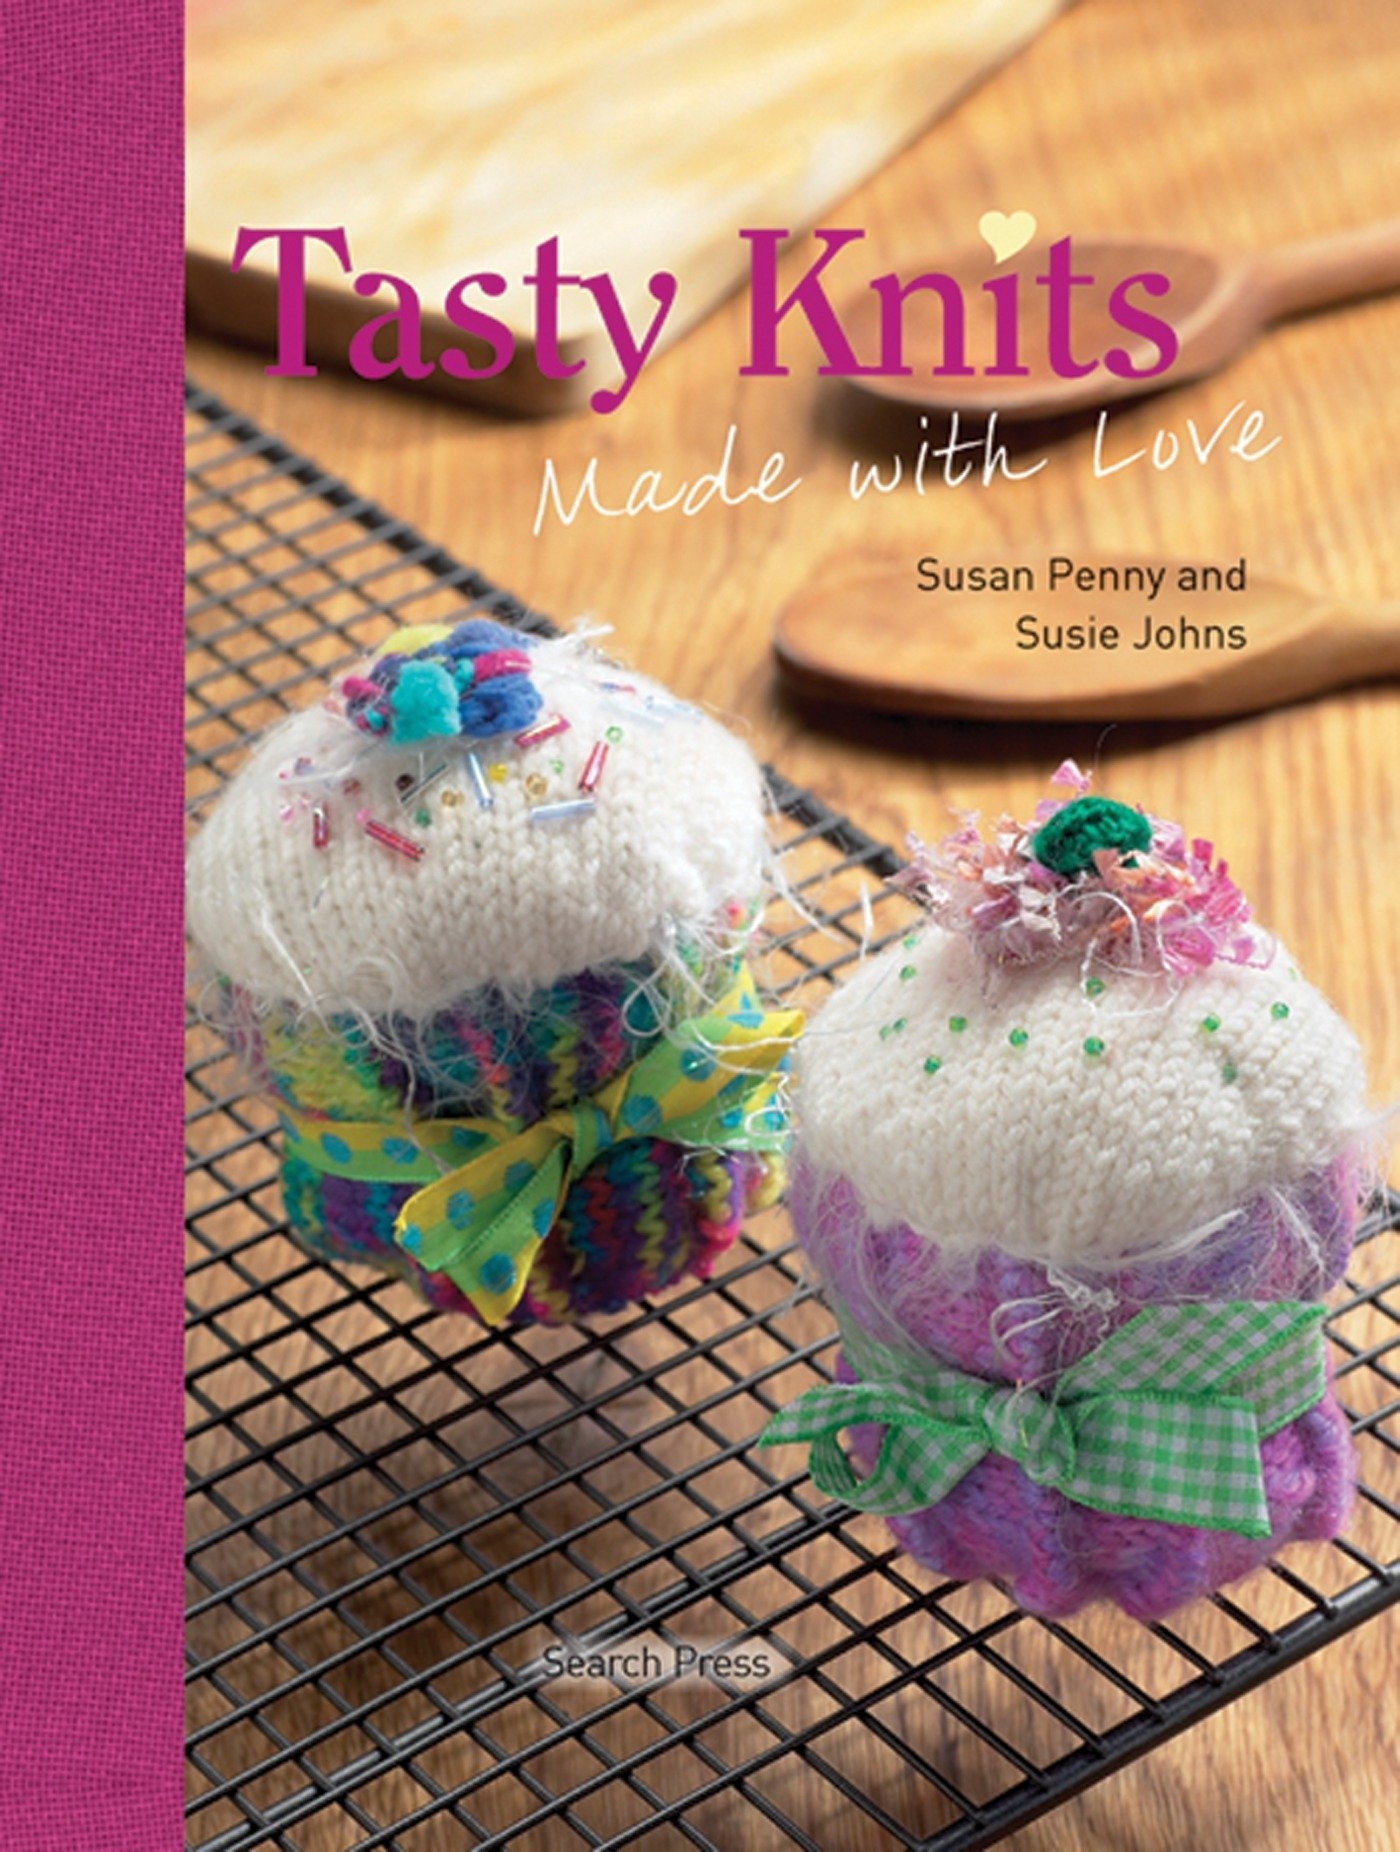 Tasty Knits: Made with Love pdf